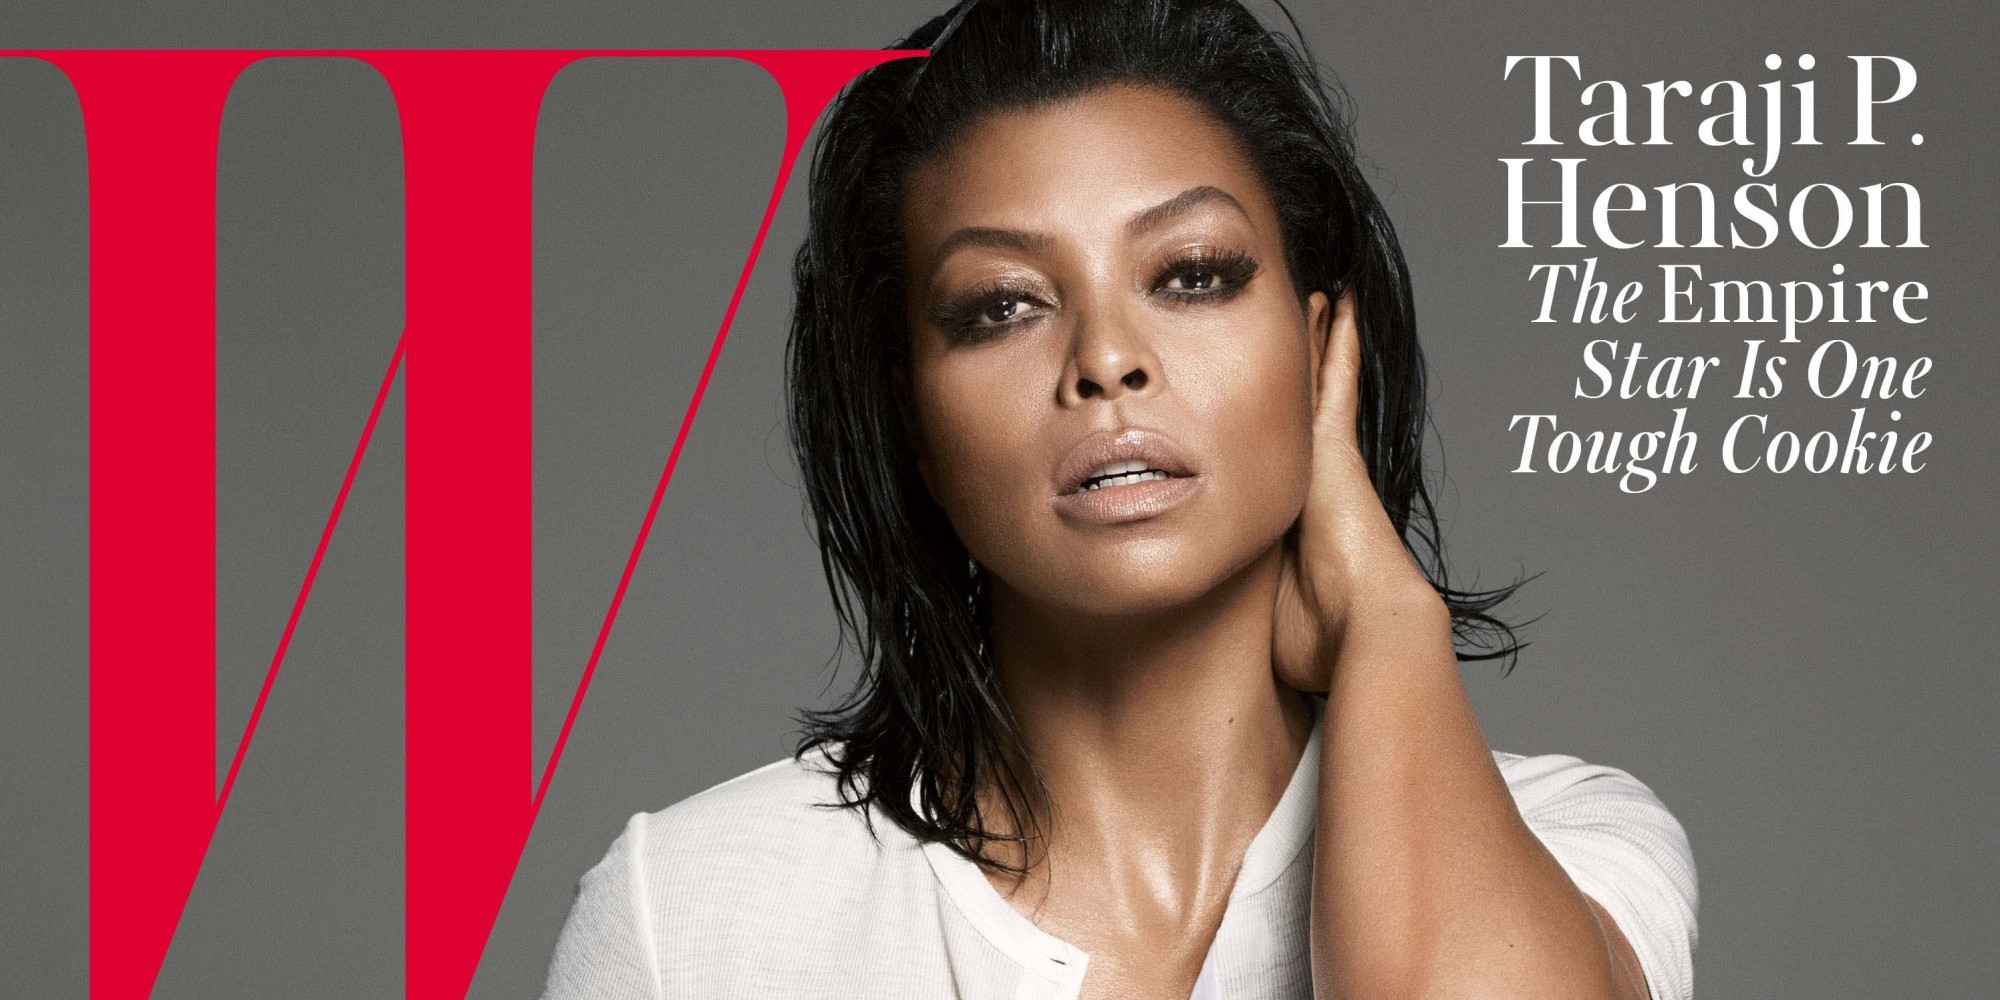 Taraji p henson graces the cover of w magazine and totally blows our